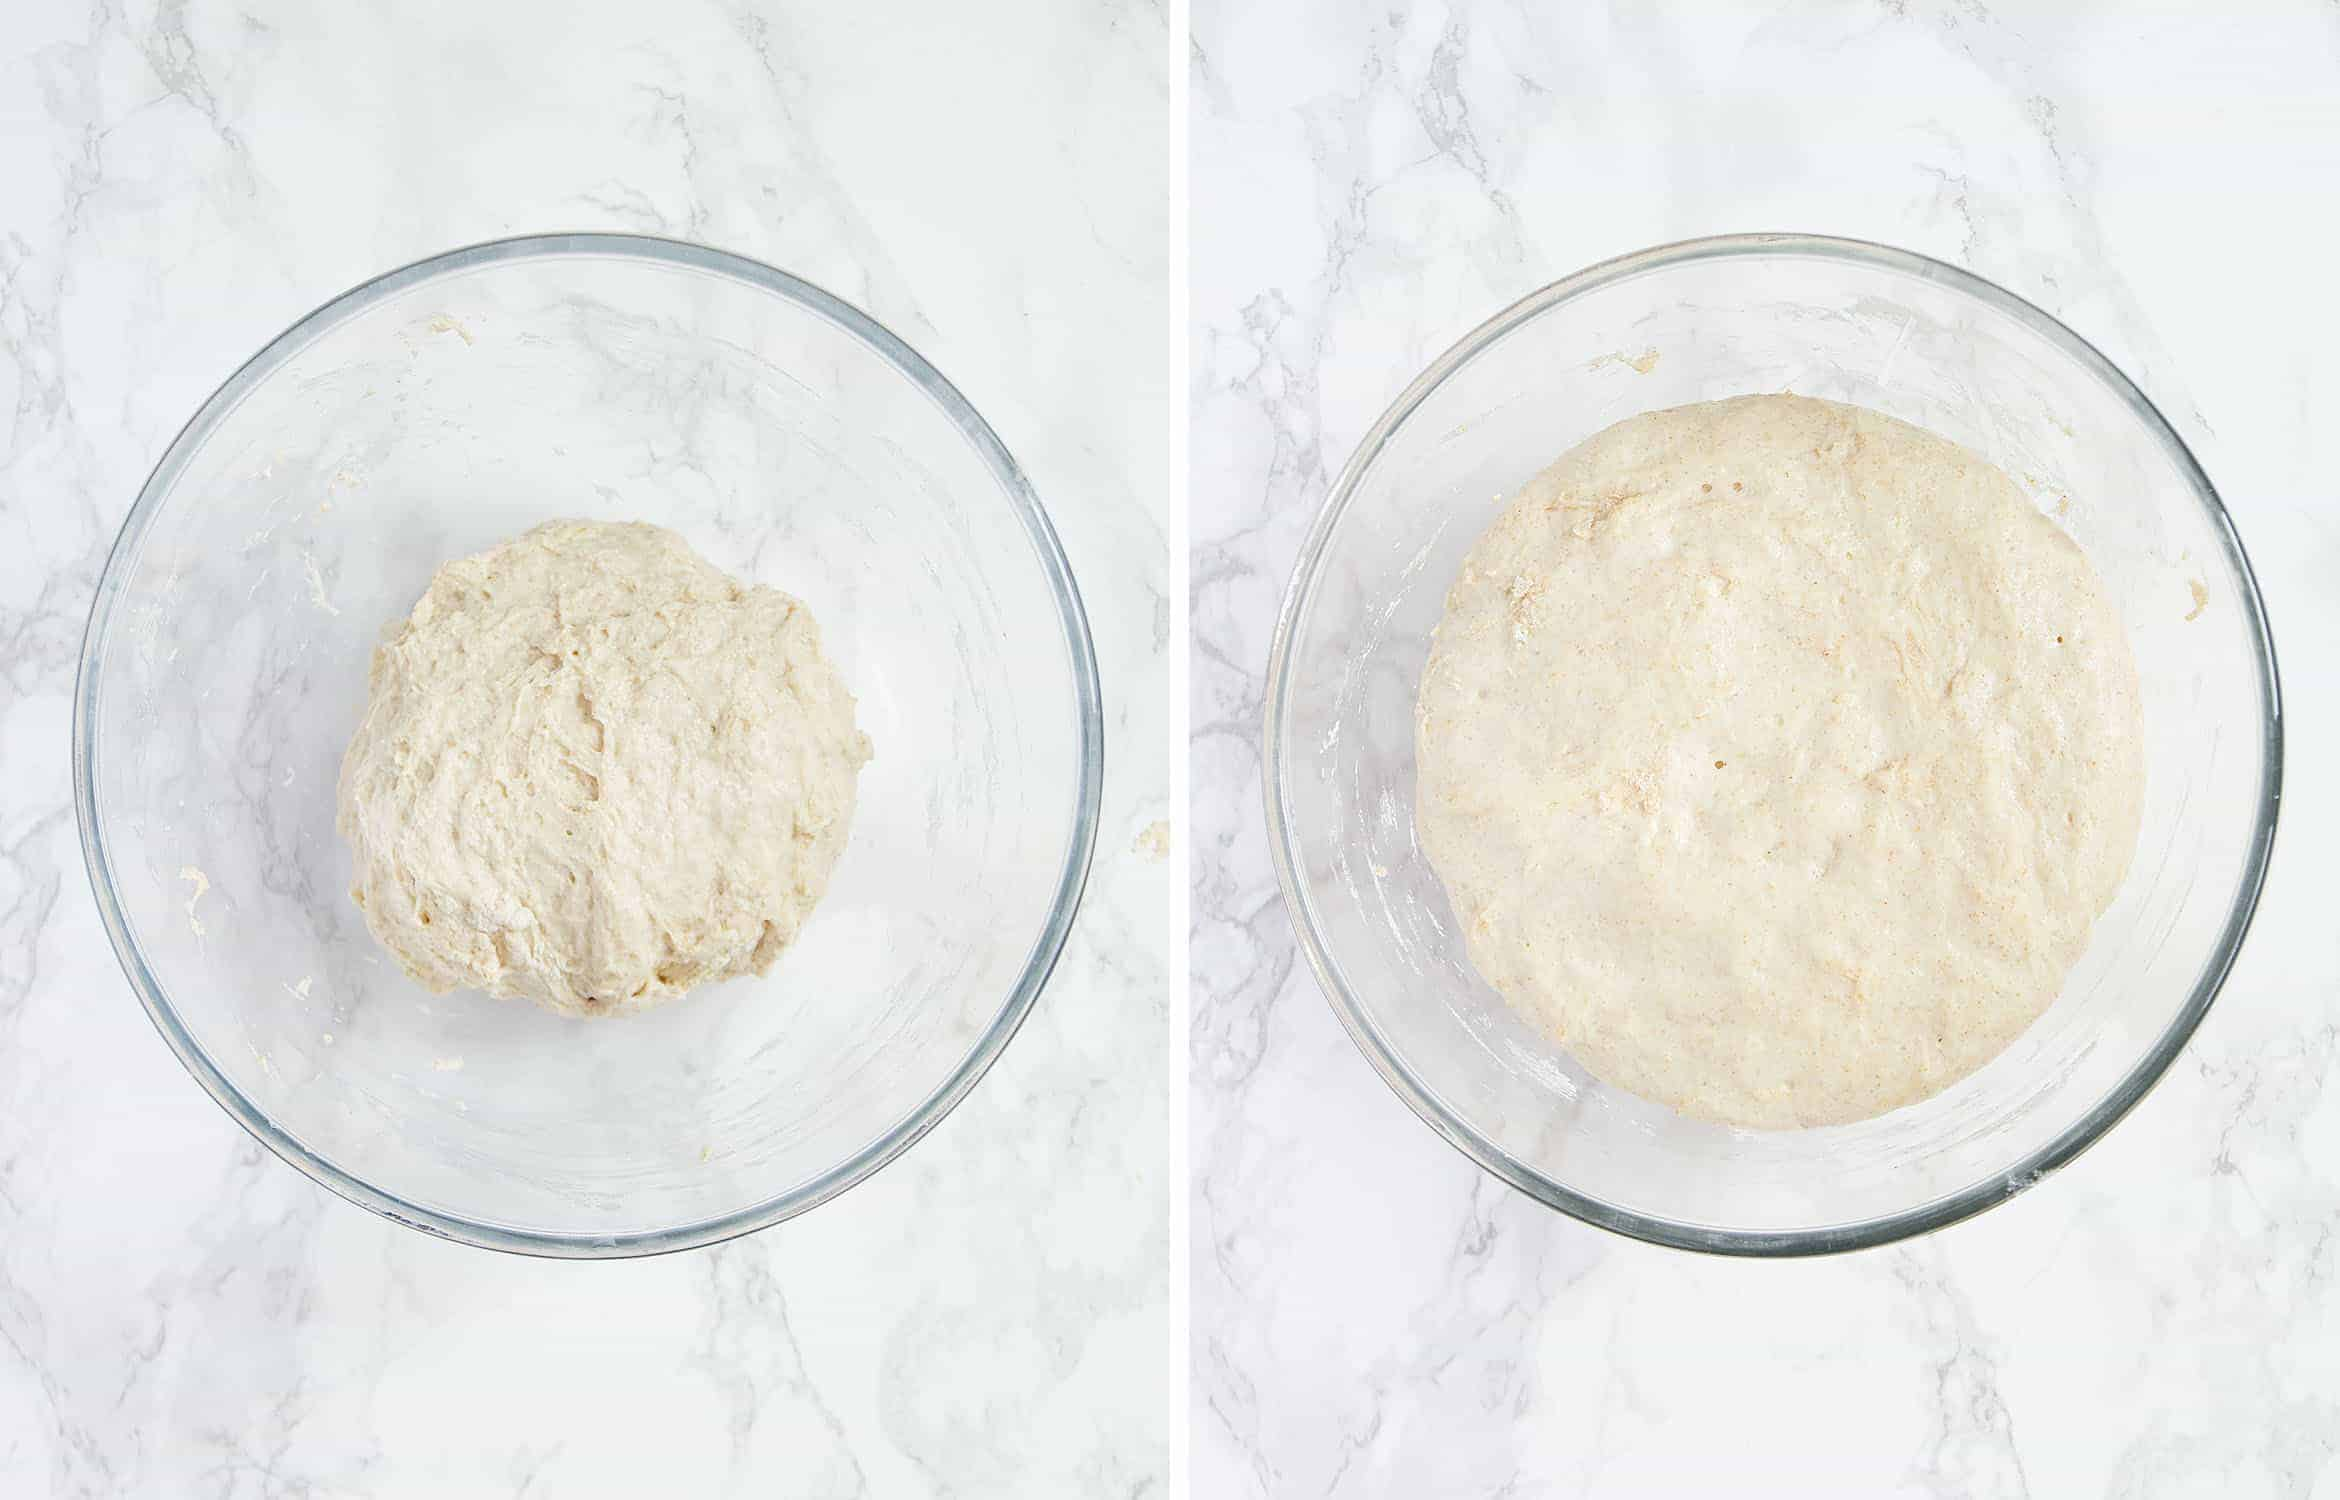 Two images show the dough before and after the rest in the warm oven.